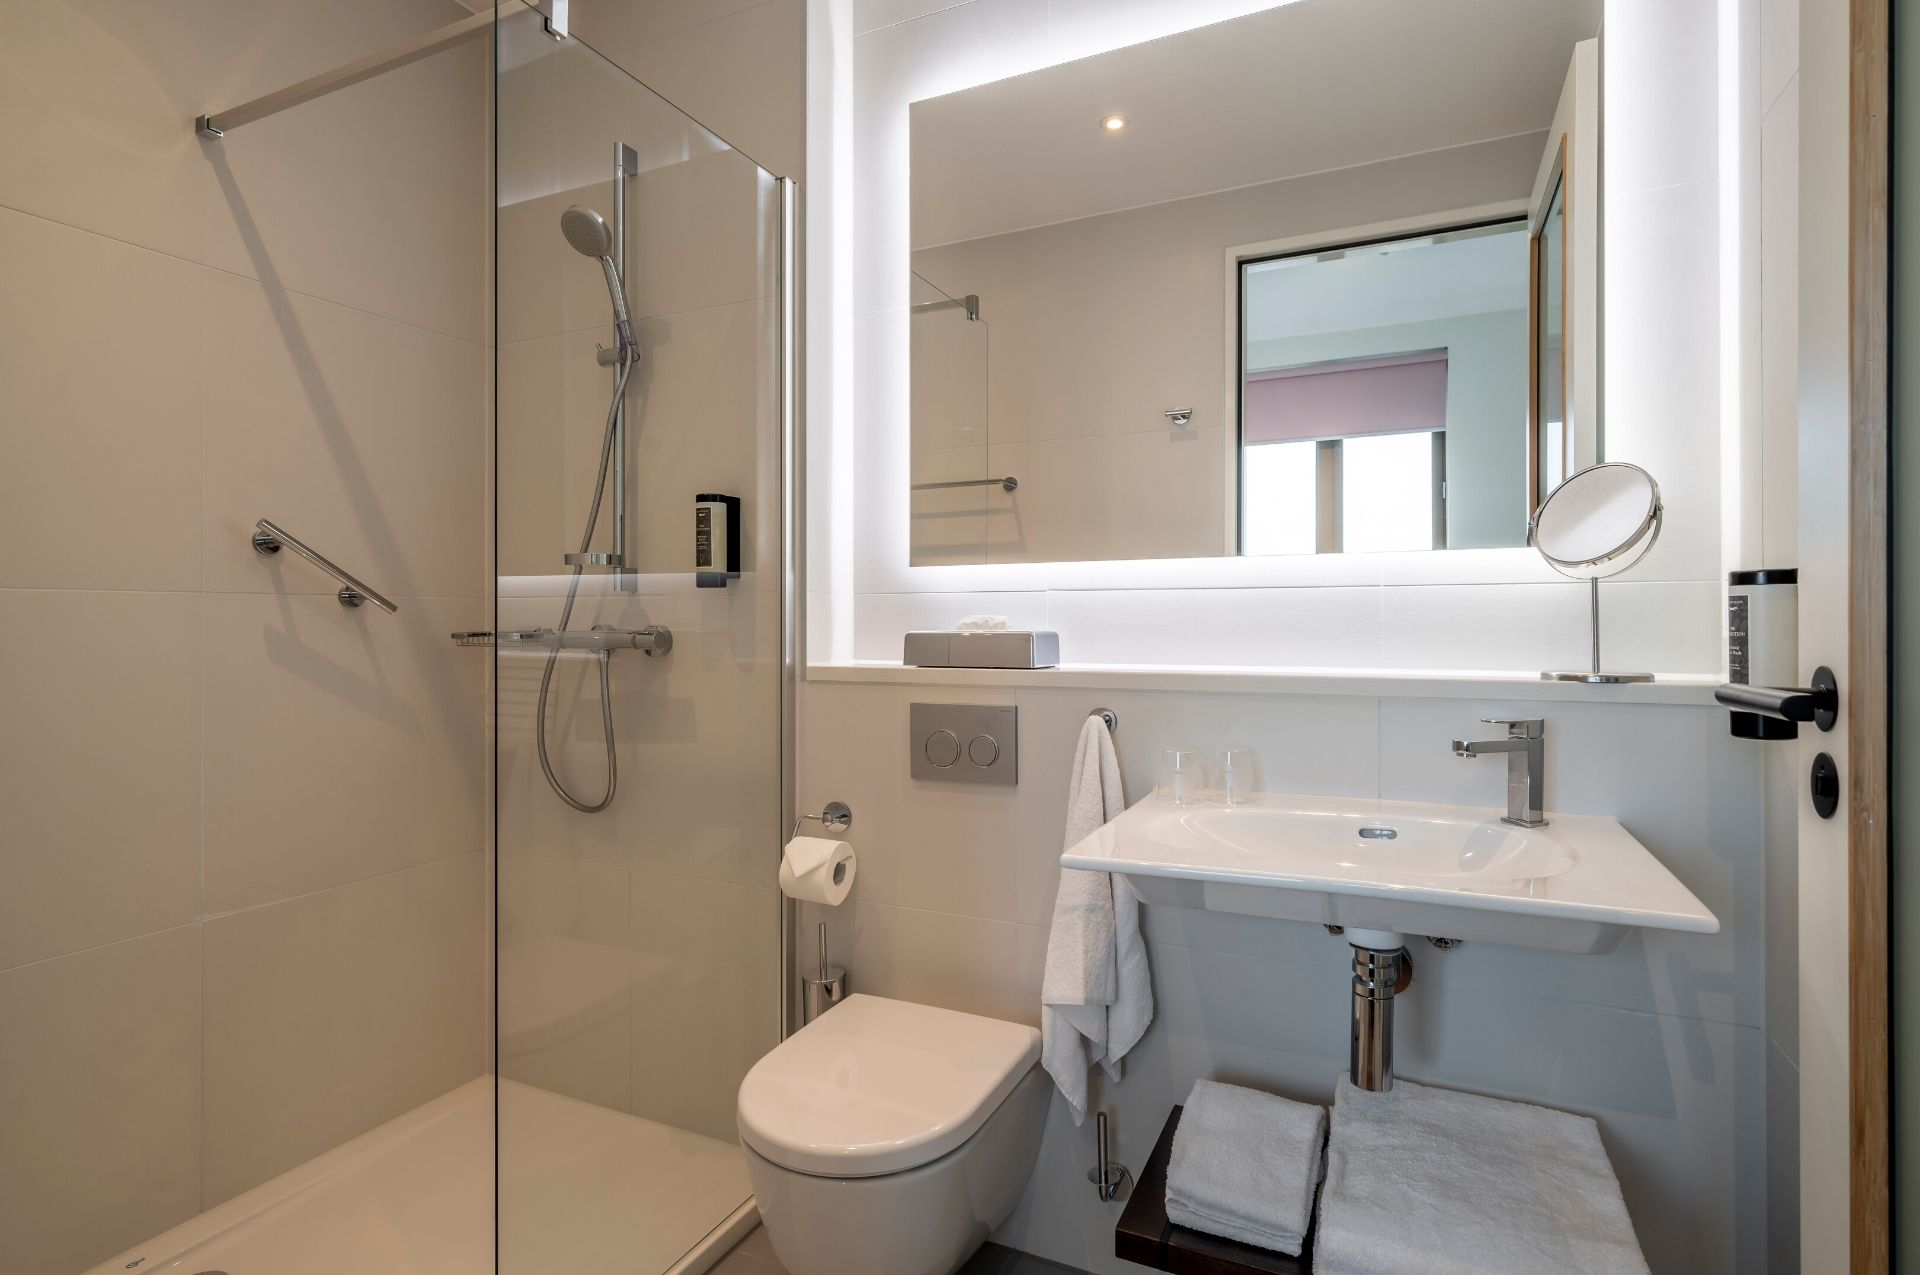 PREMIER SUITES PLUS Amsterdam Loft Bathroom